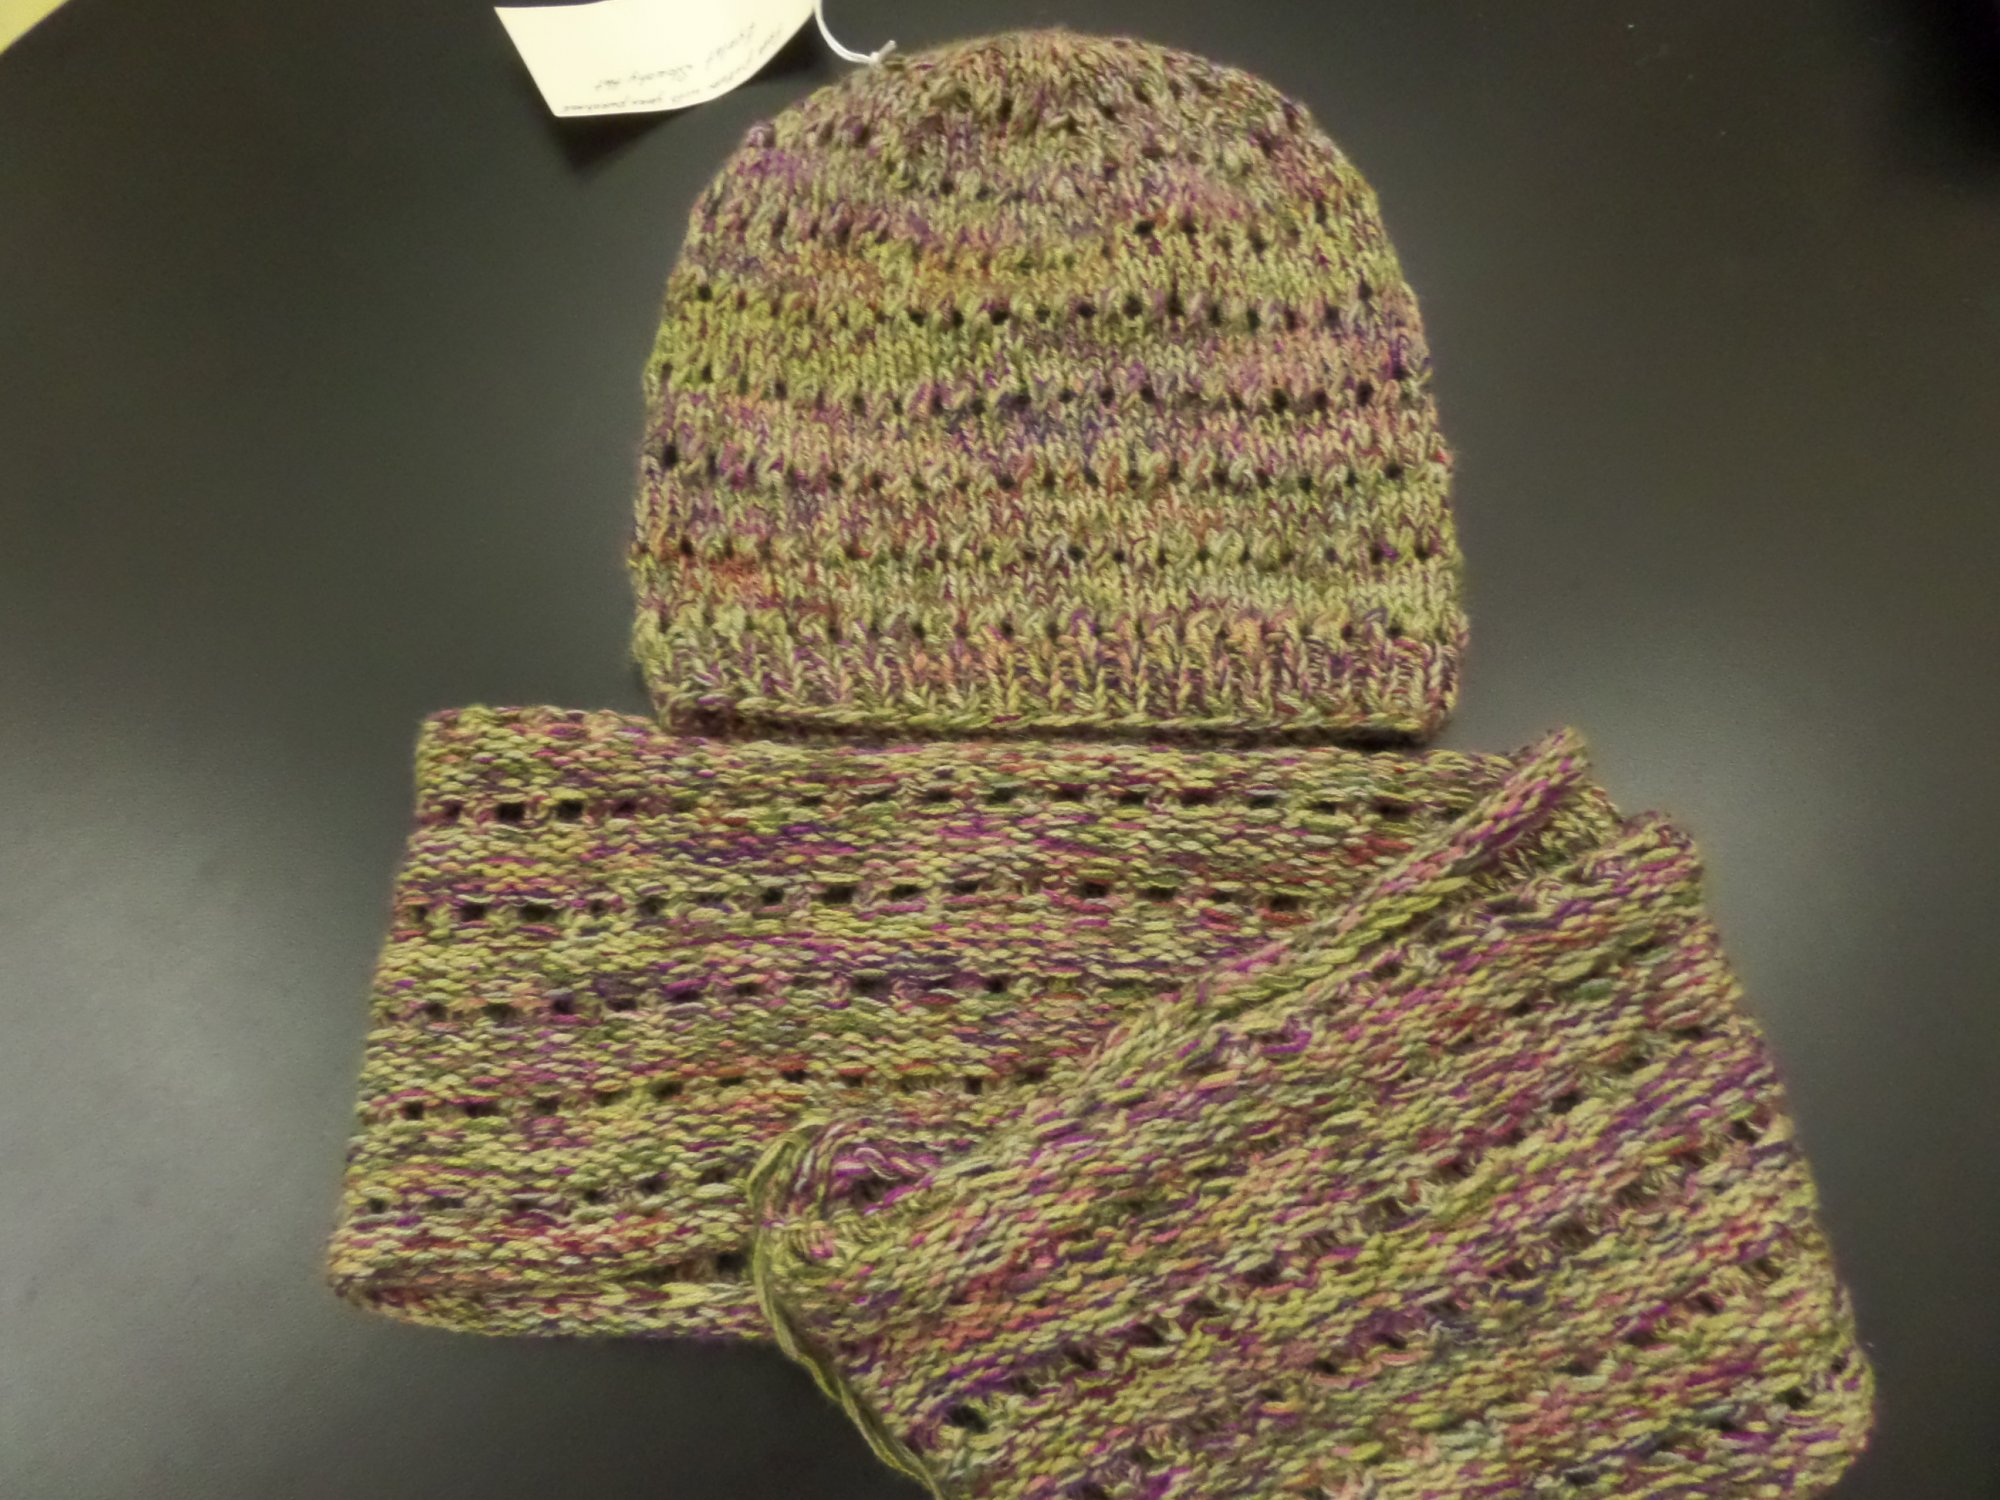 Eyelet Chunky Cowl and Sloucy Hat model set in Silky Alpaca Lace